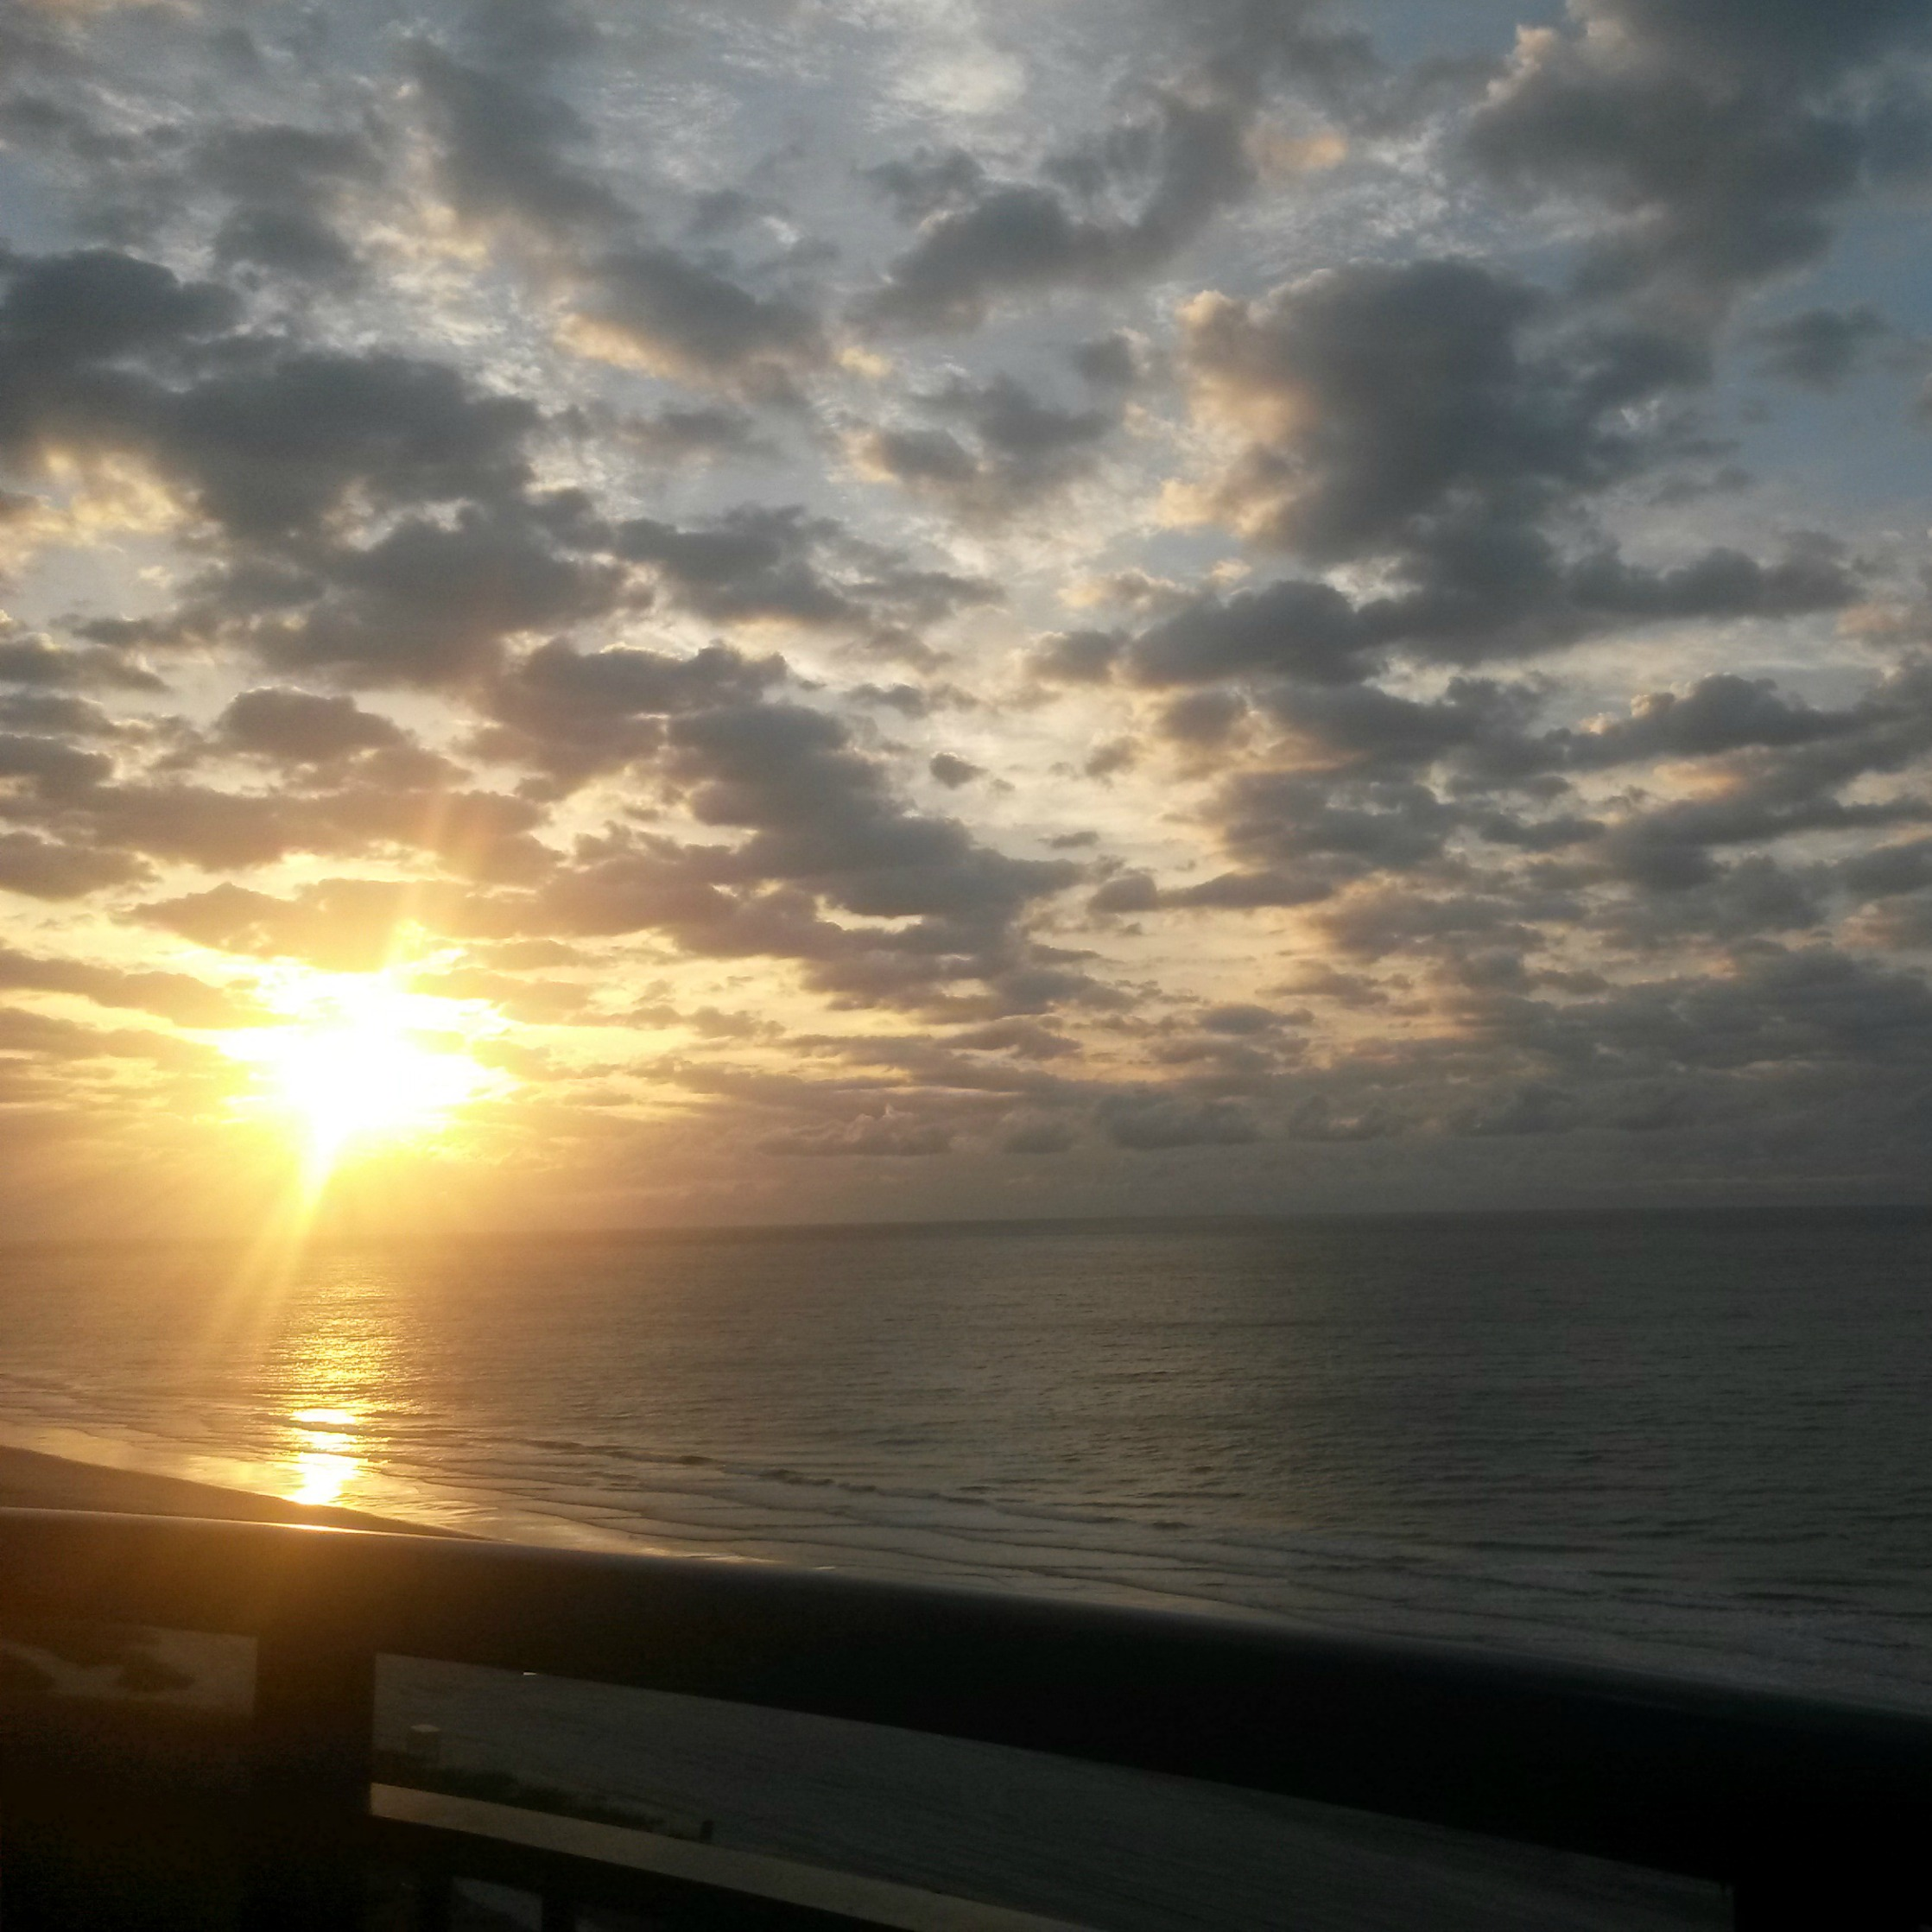 Sunrise in Myrtle Beach